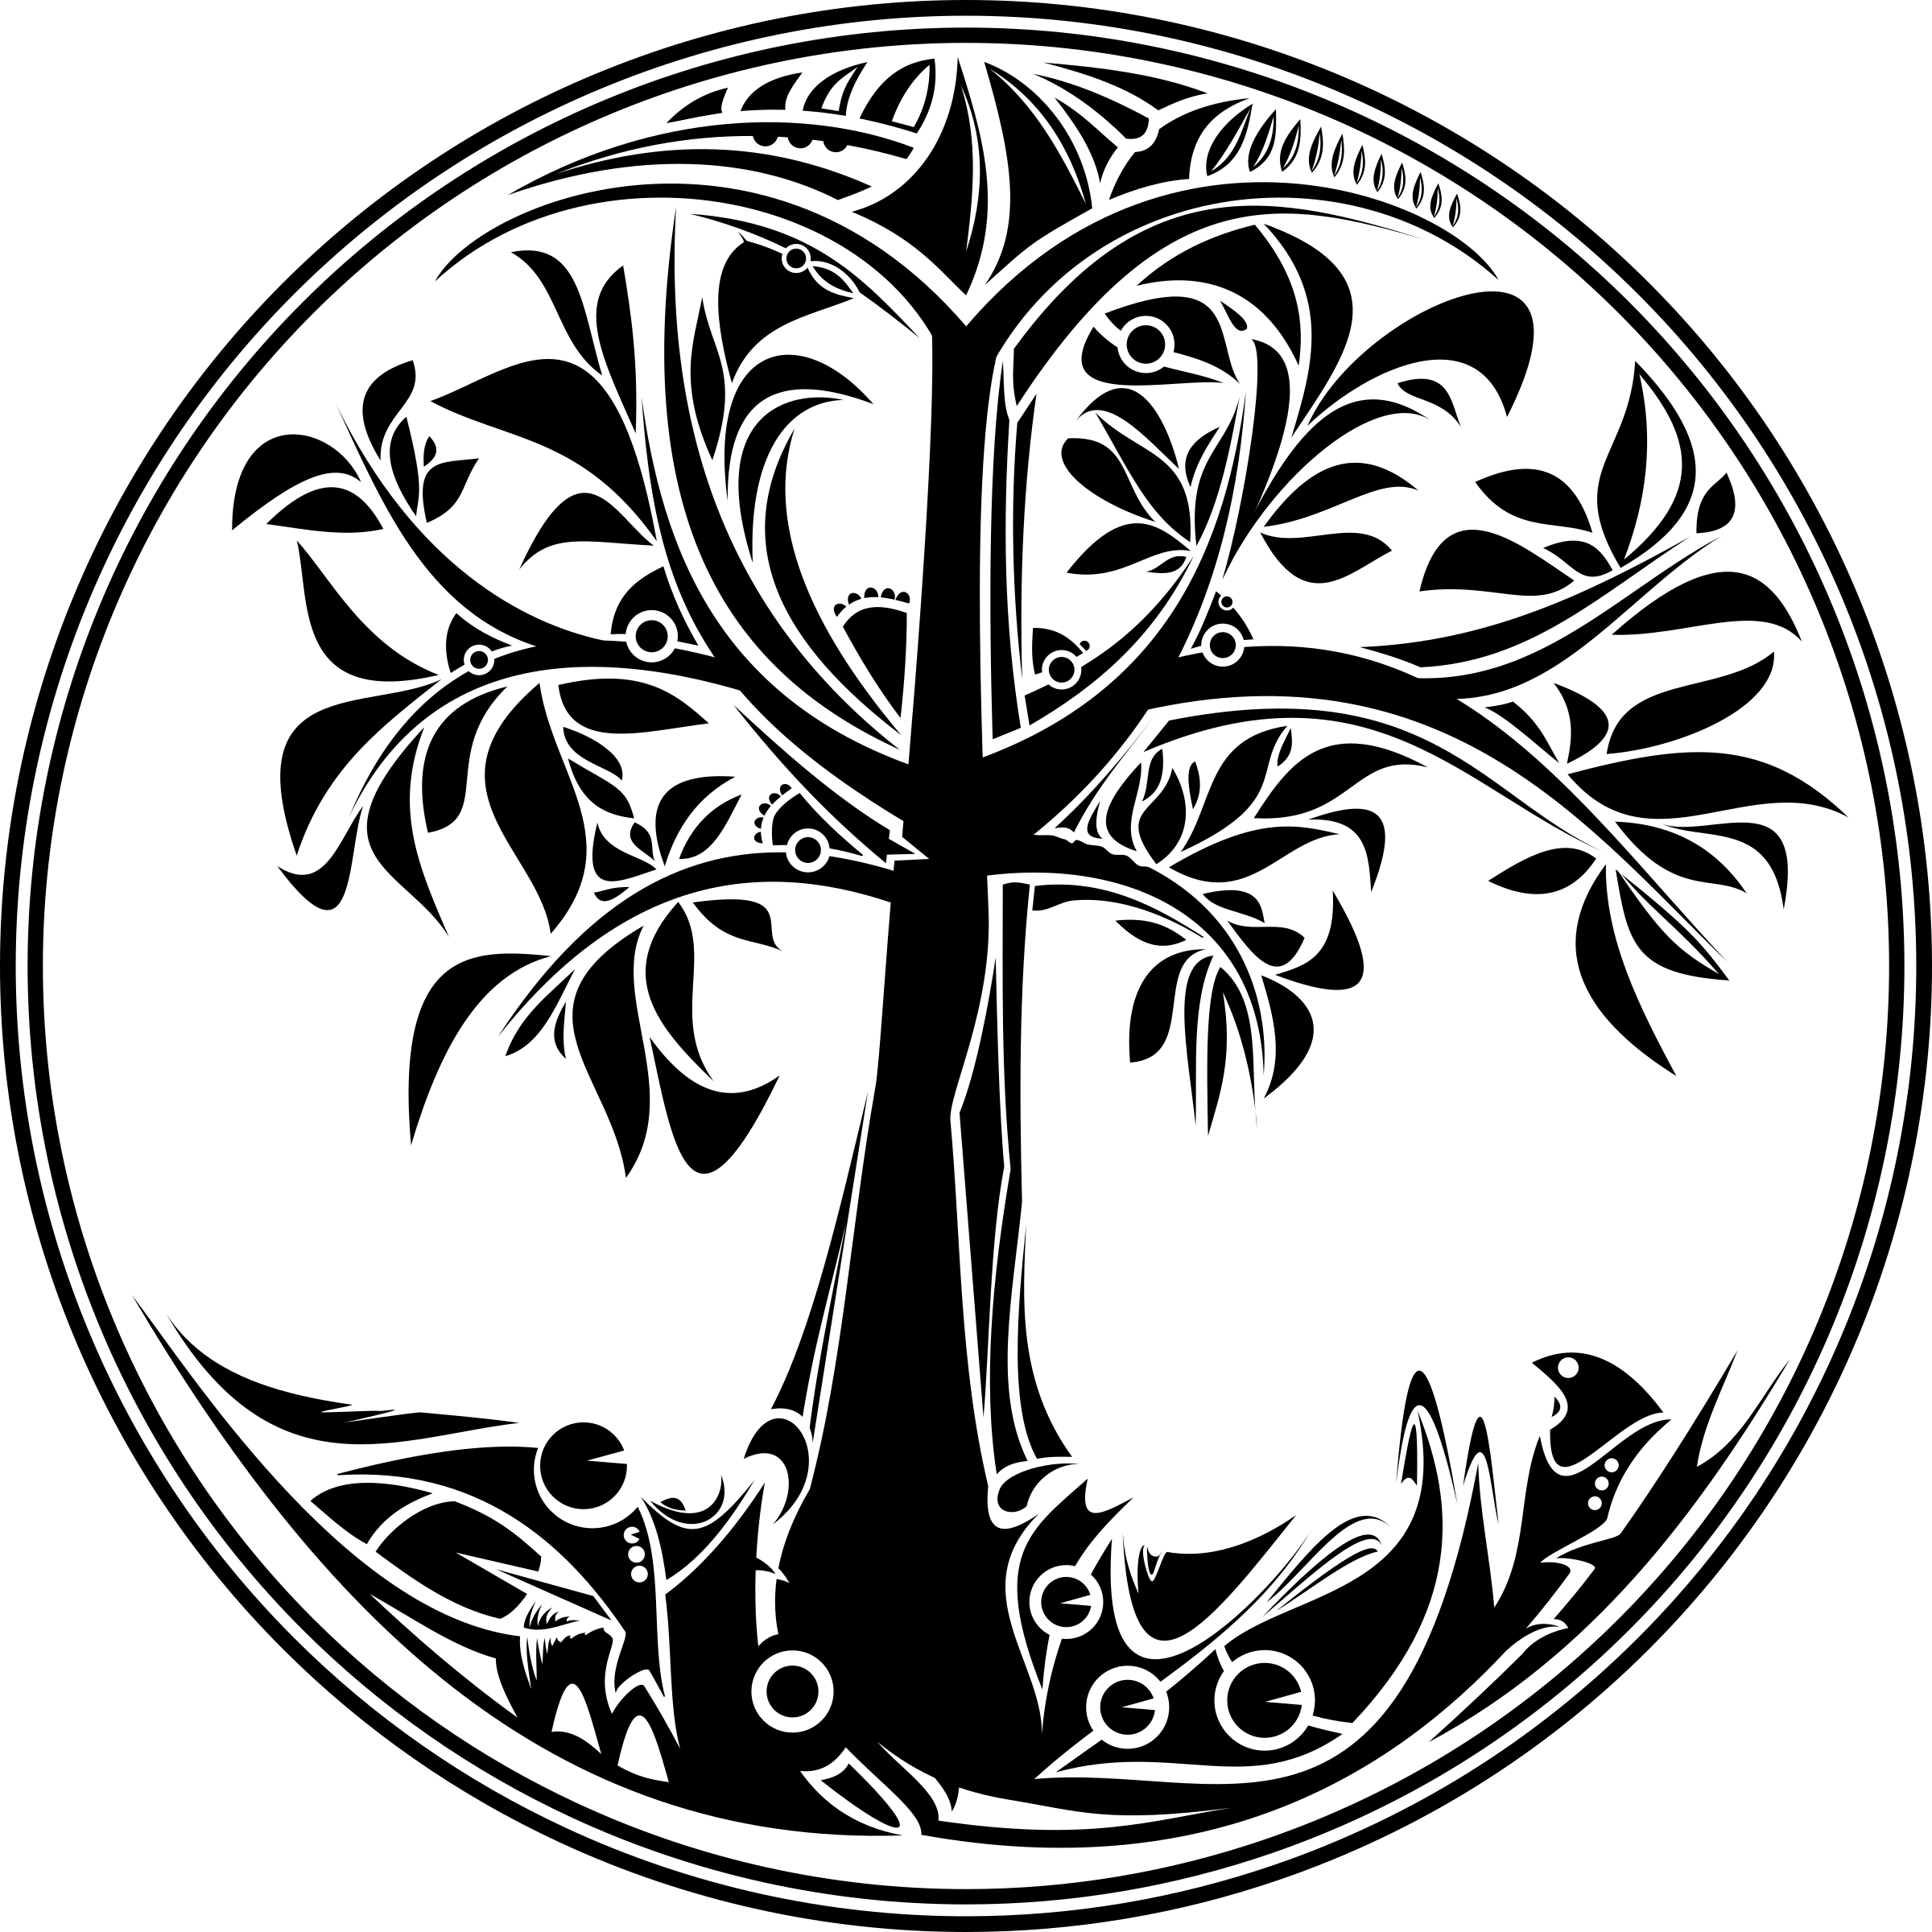 Newness of life clipart black and white vector royalty free stock What is the Tree of Life? Meaning & Symbolism from Bible vector royalty free stock